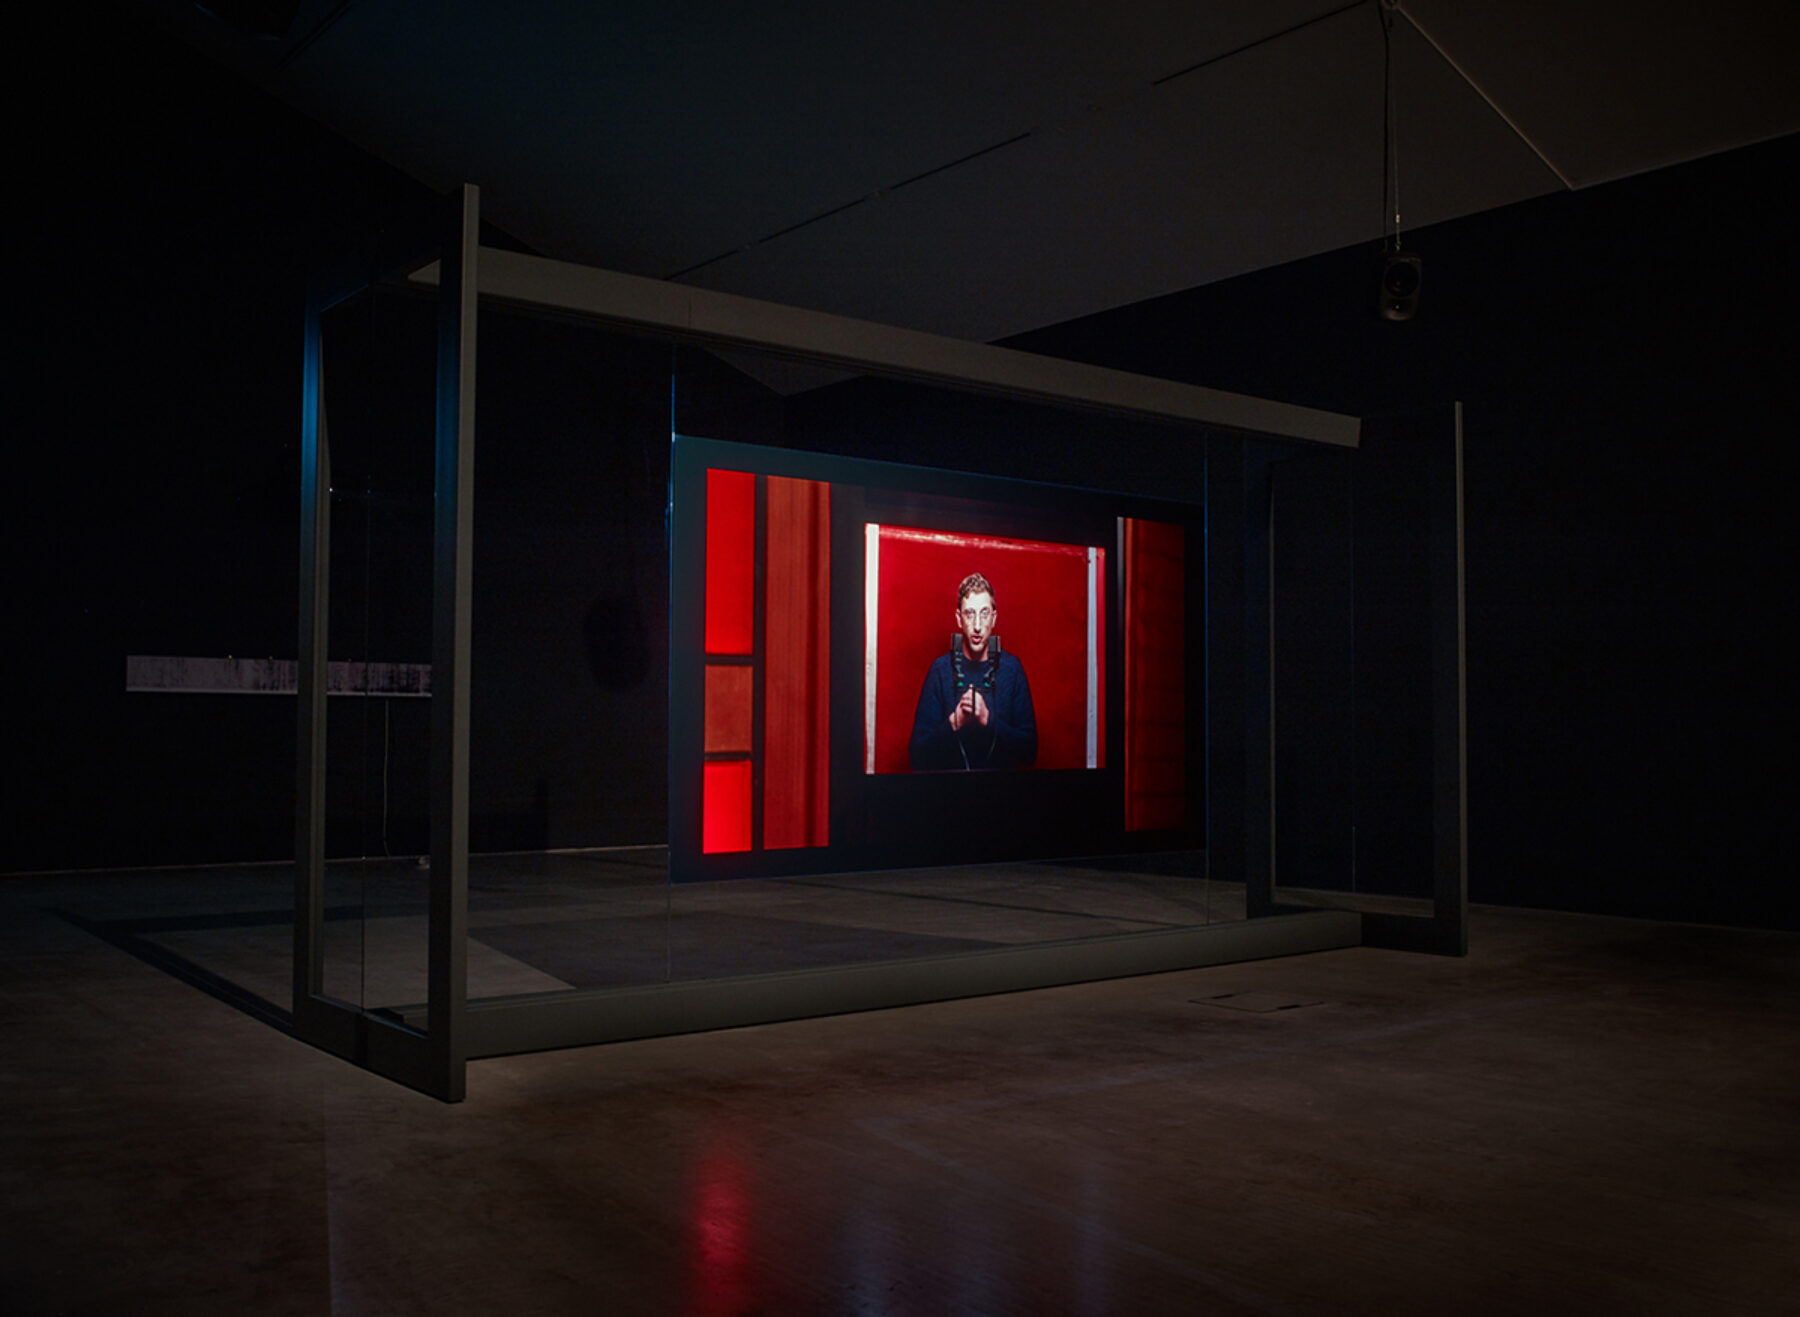 Lawrence Abu Hamdan, Walled Unwalled (2018), Single channel video installation. Exhibition view at Turner Prize, Turner Contemporary, Margate, (2019).